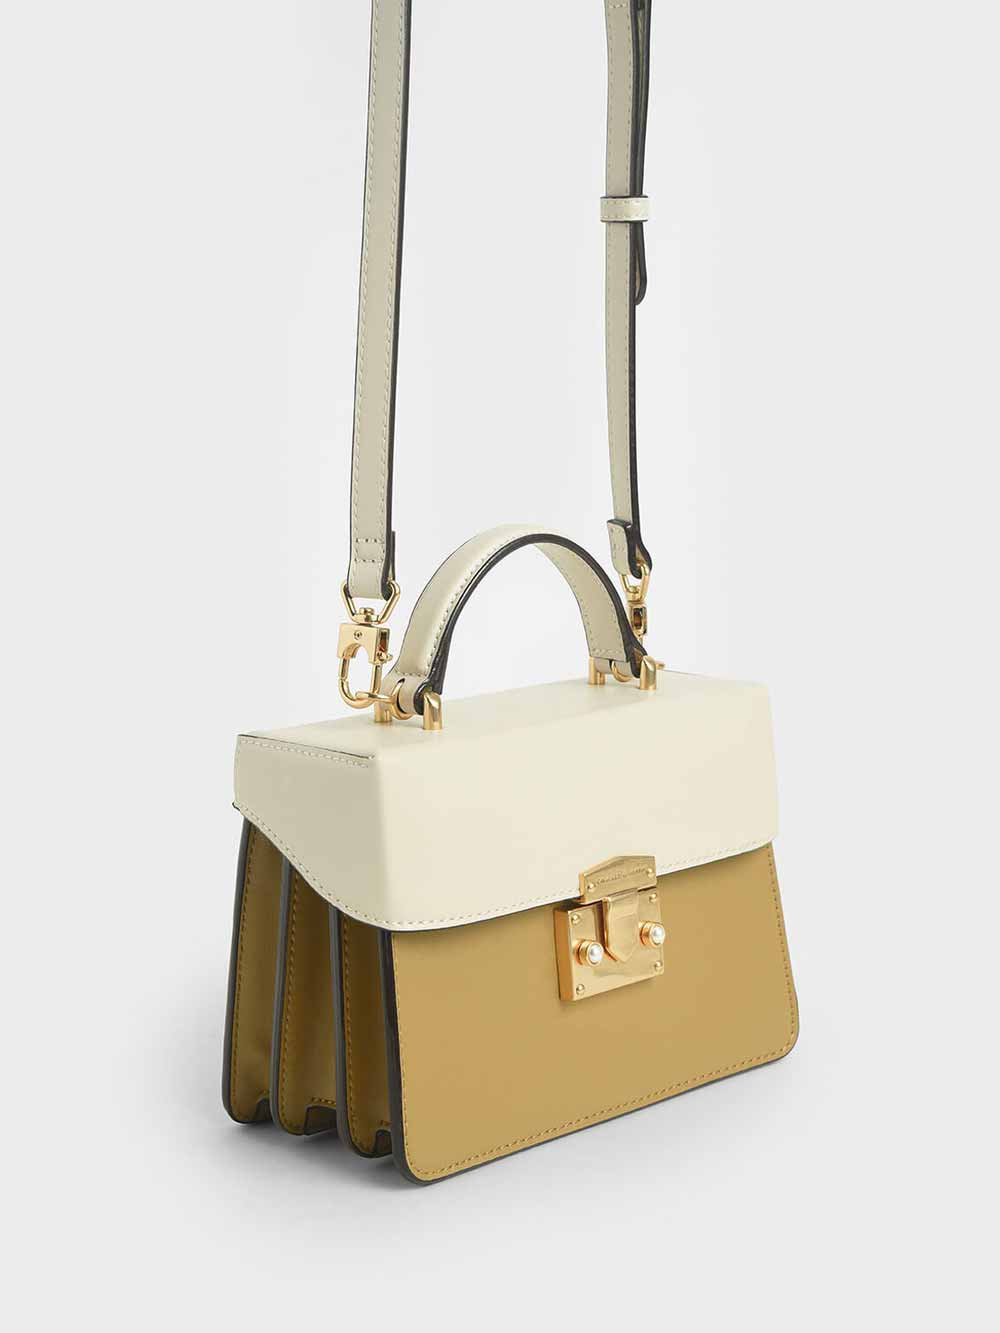 Two-Tone Metallic Push-Lock Handbag